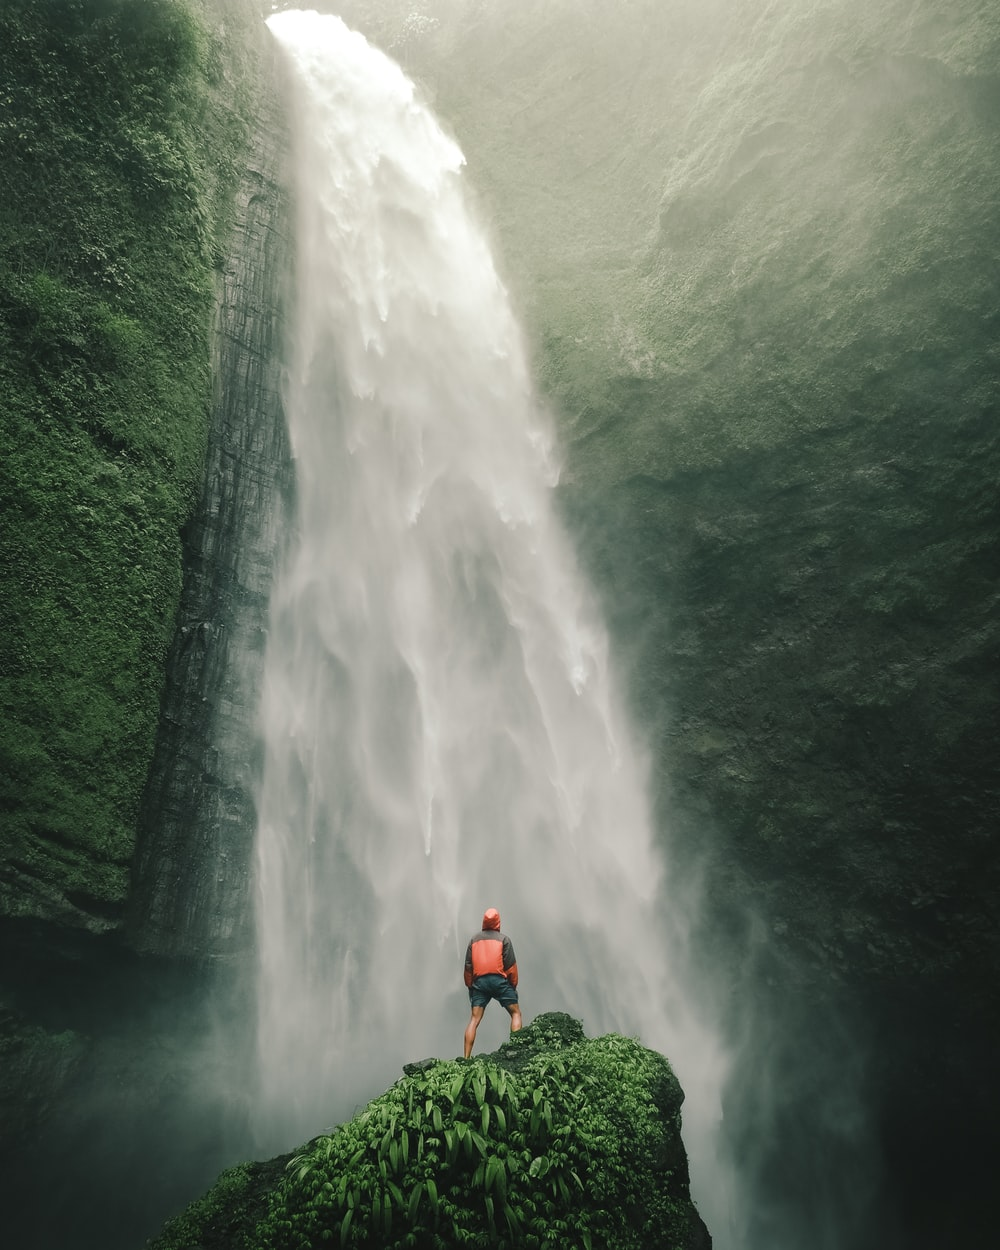 person standing front of water falls